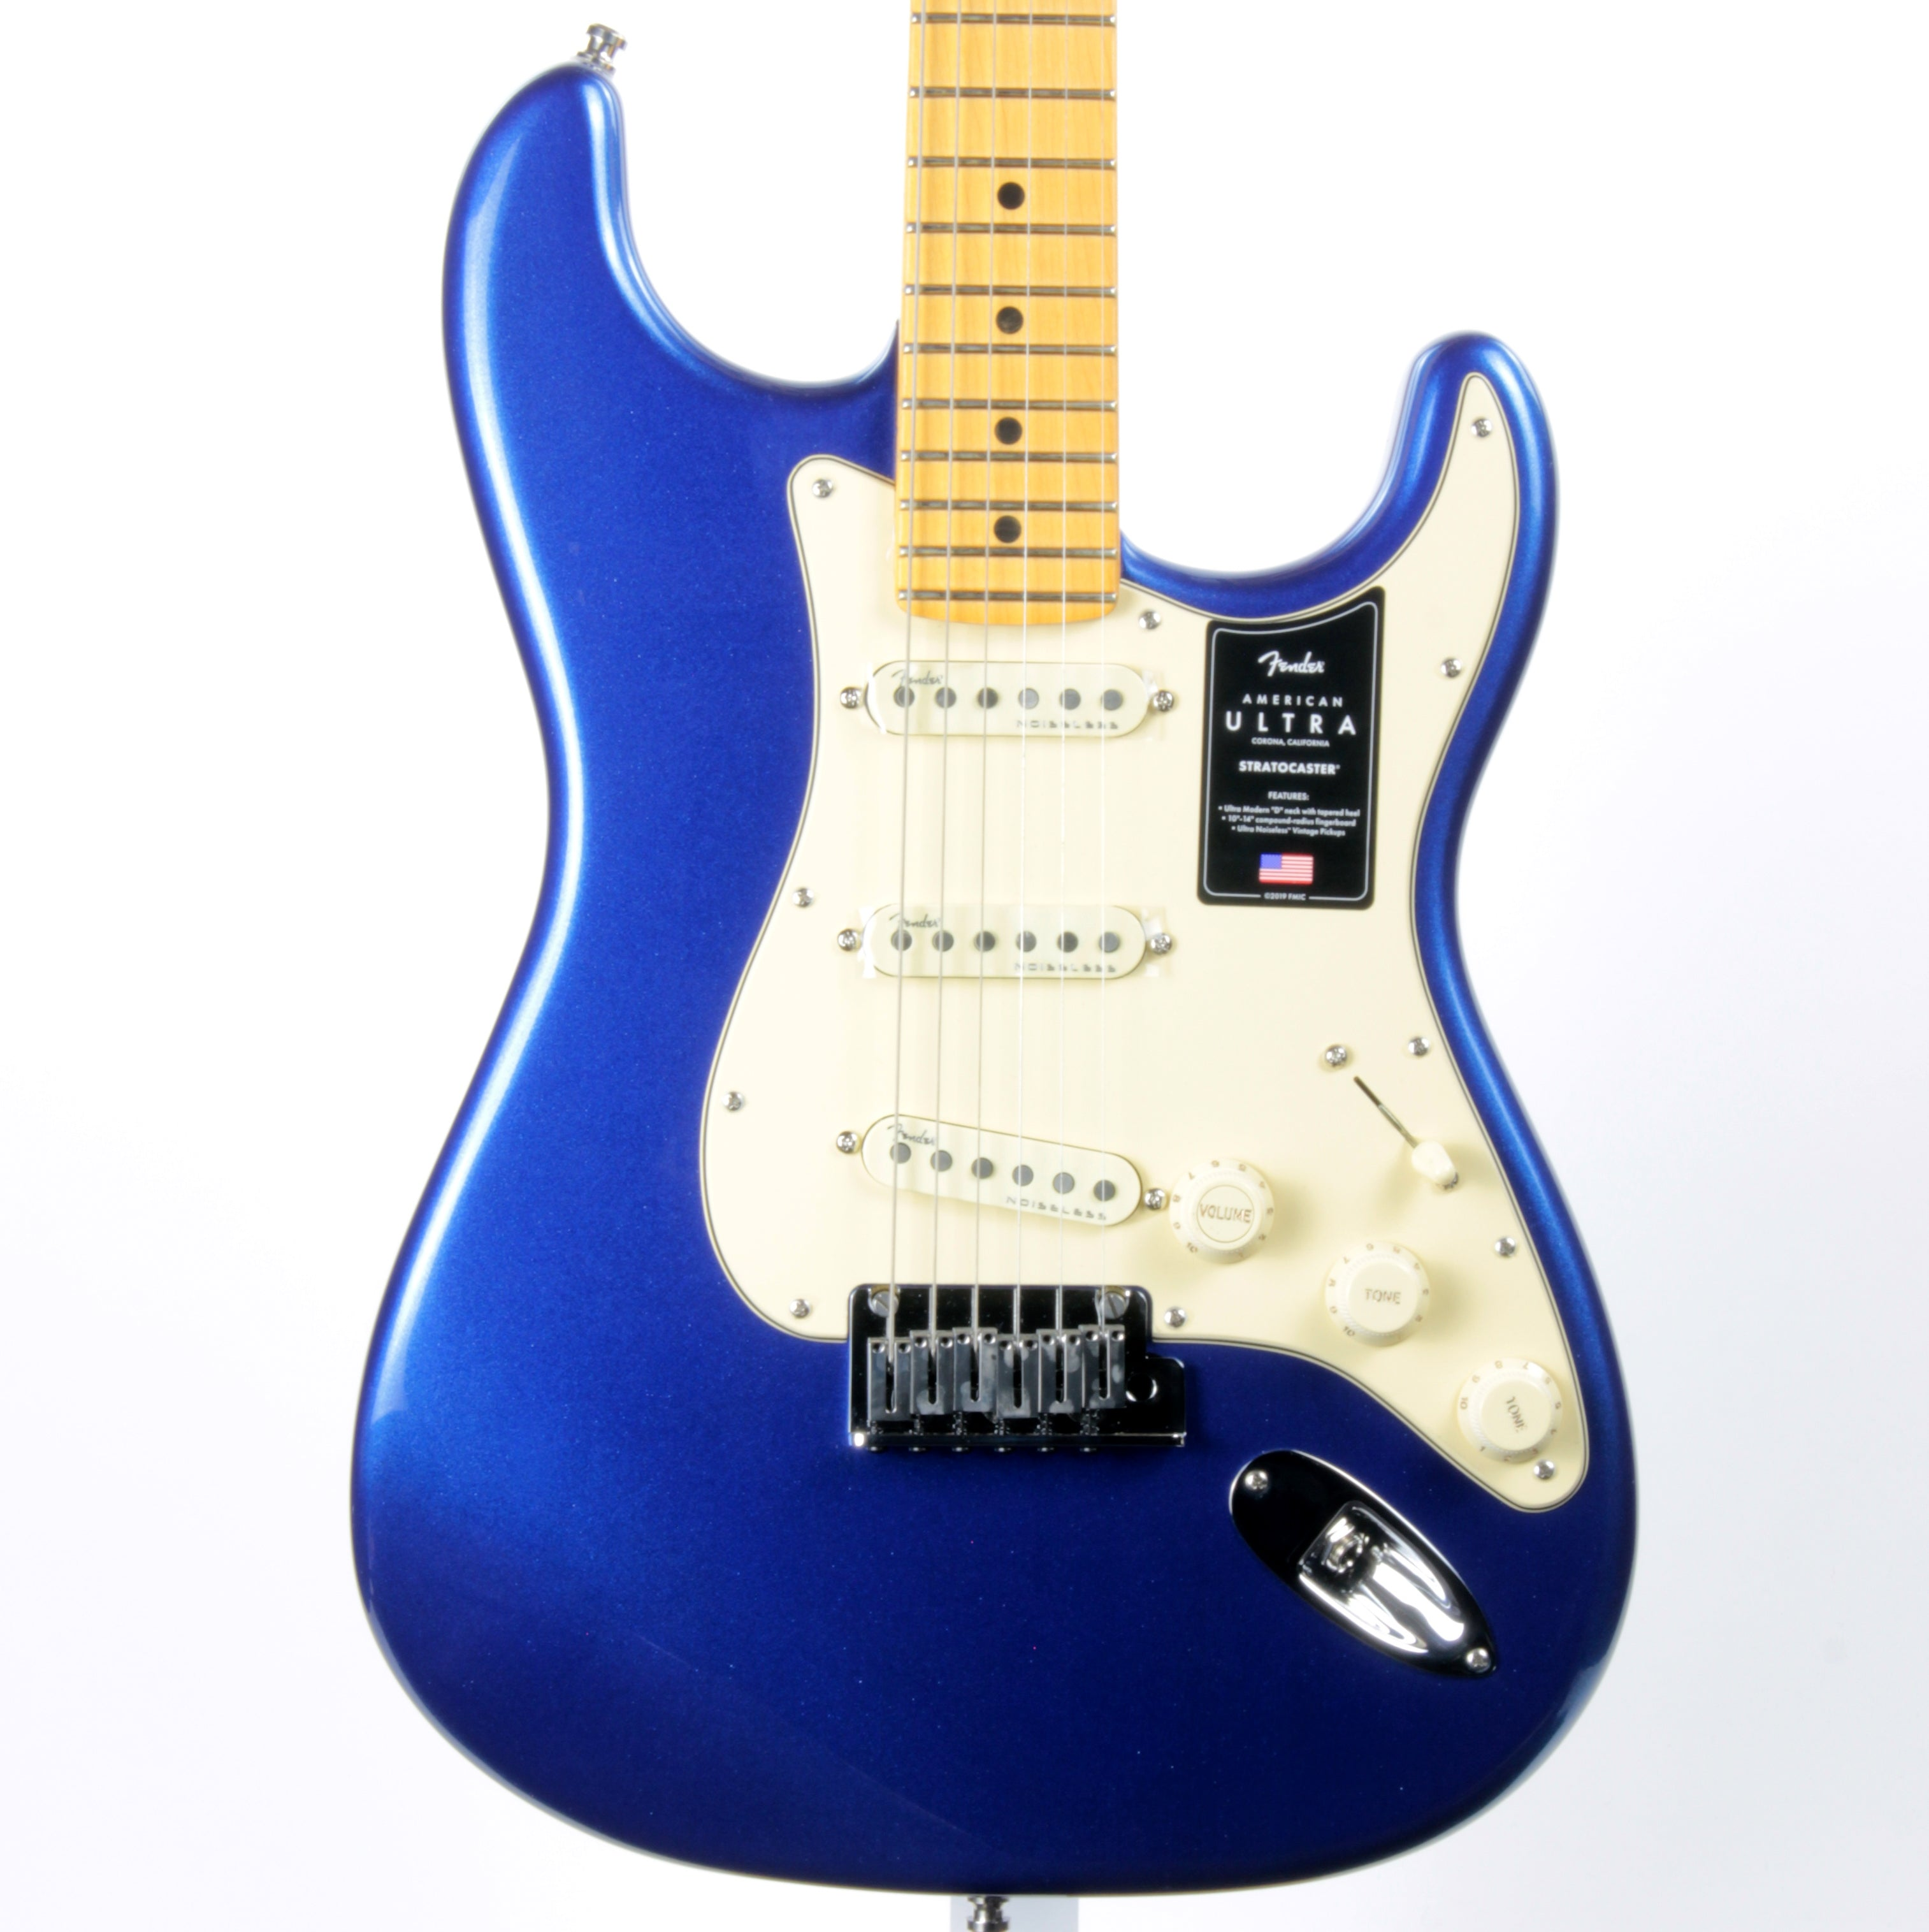 2020 Fender American ULTRA Stratocaster Cobra Blue - Maple Neck Strat USA MINT!